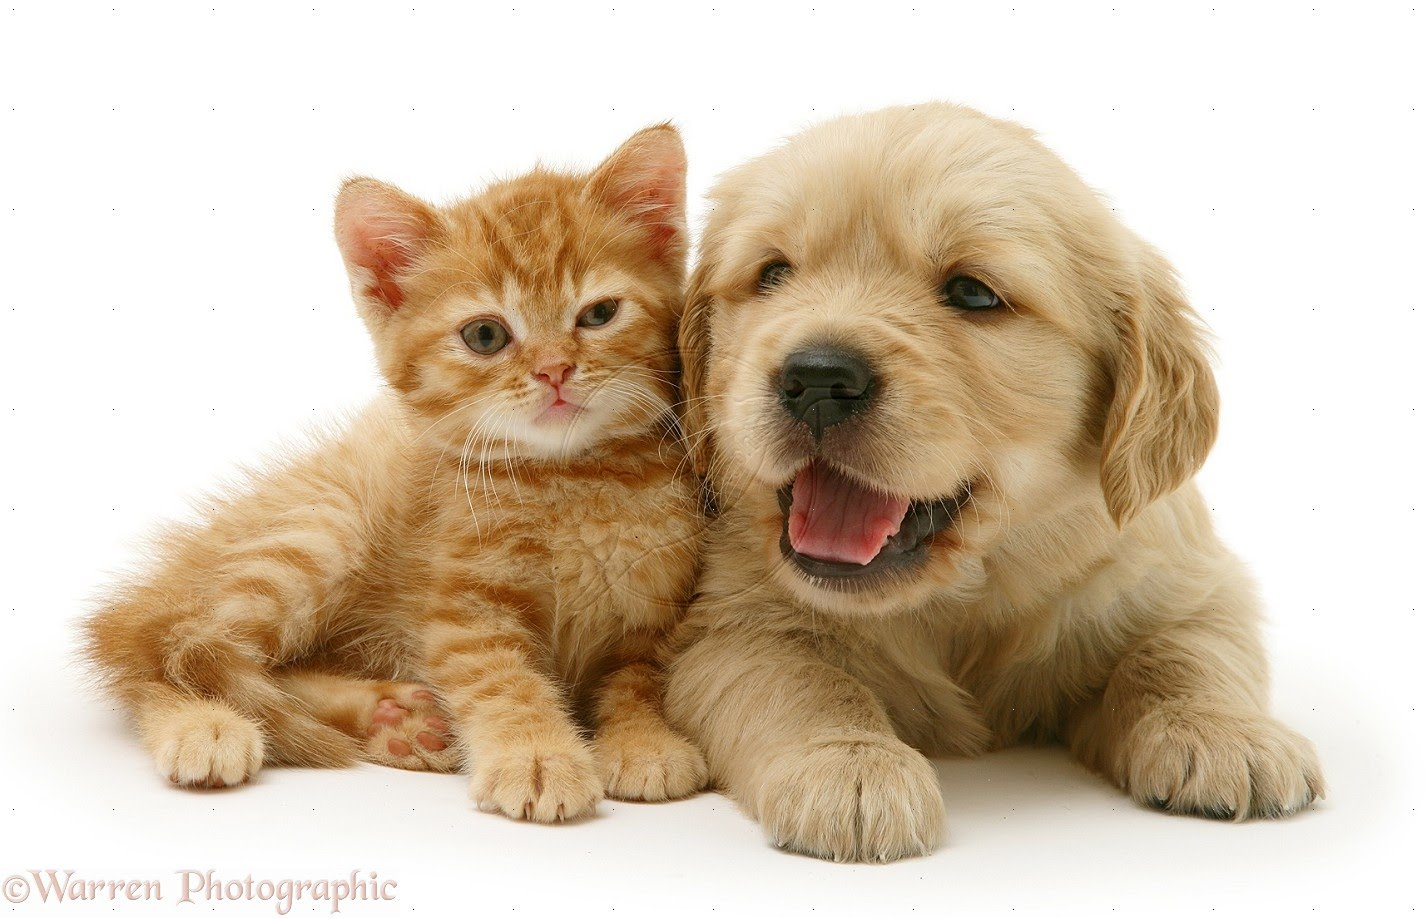 1427x918 - Cute Puppy and Kitten 16